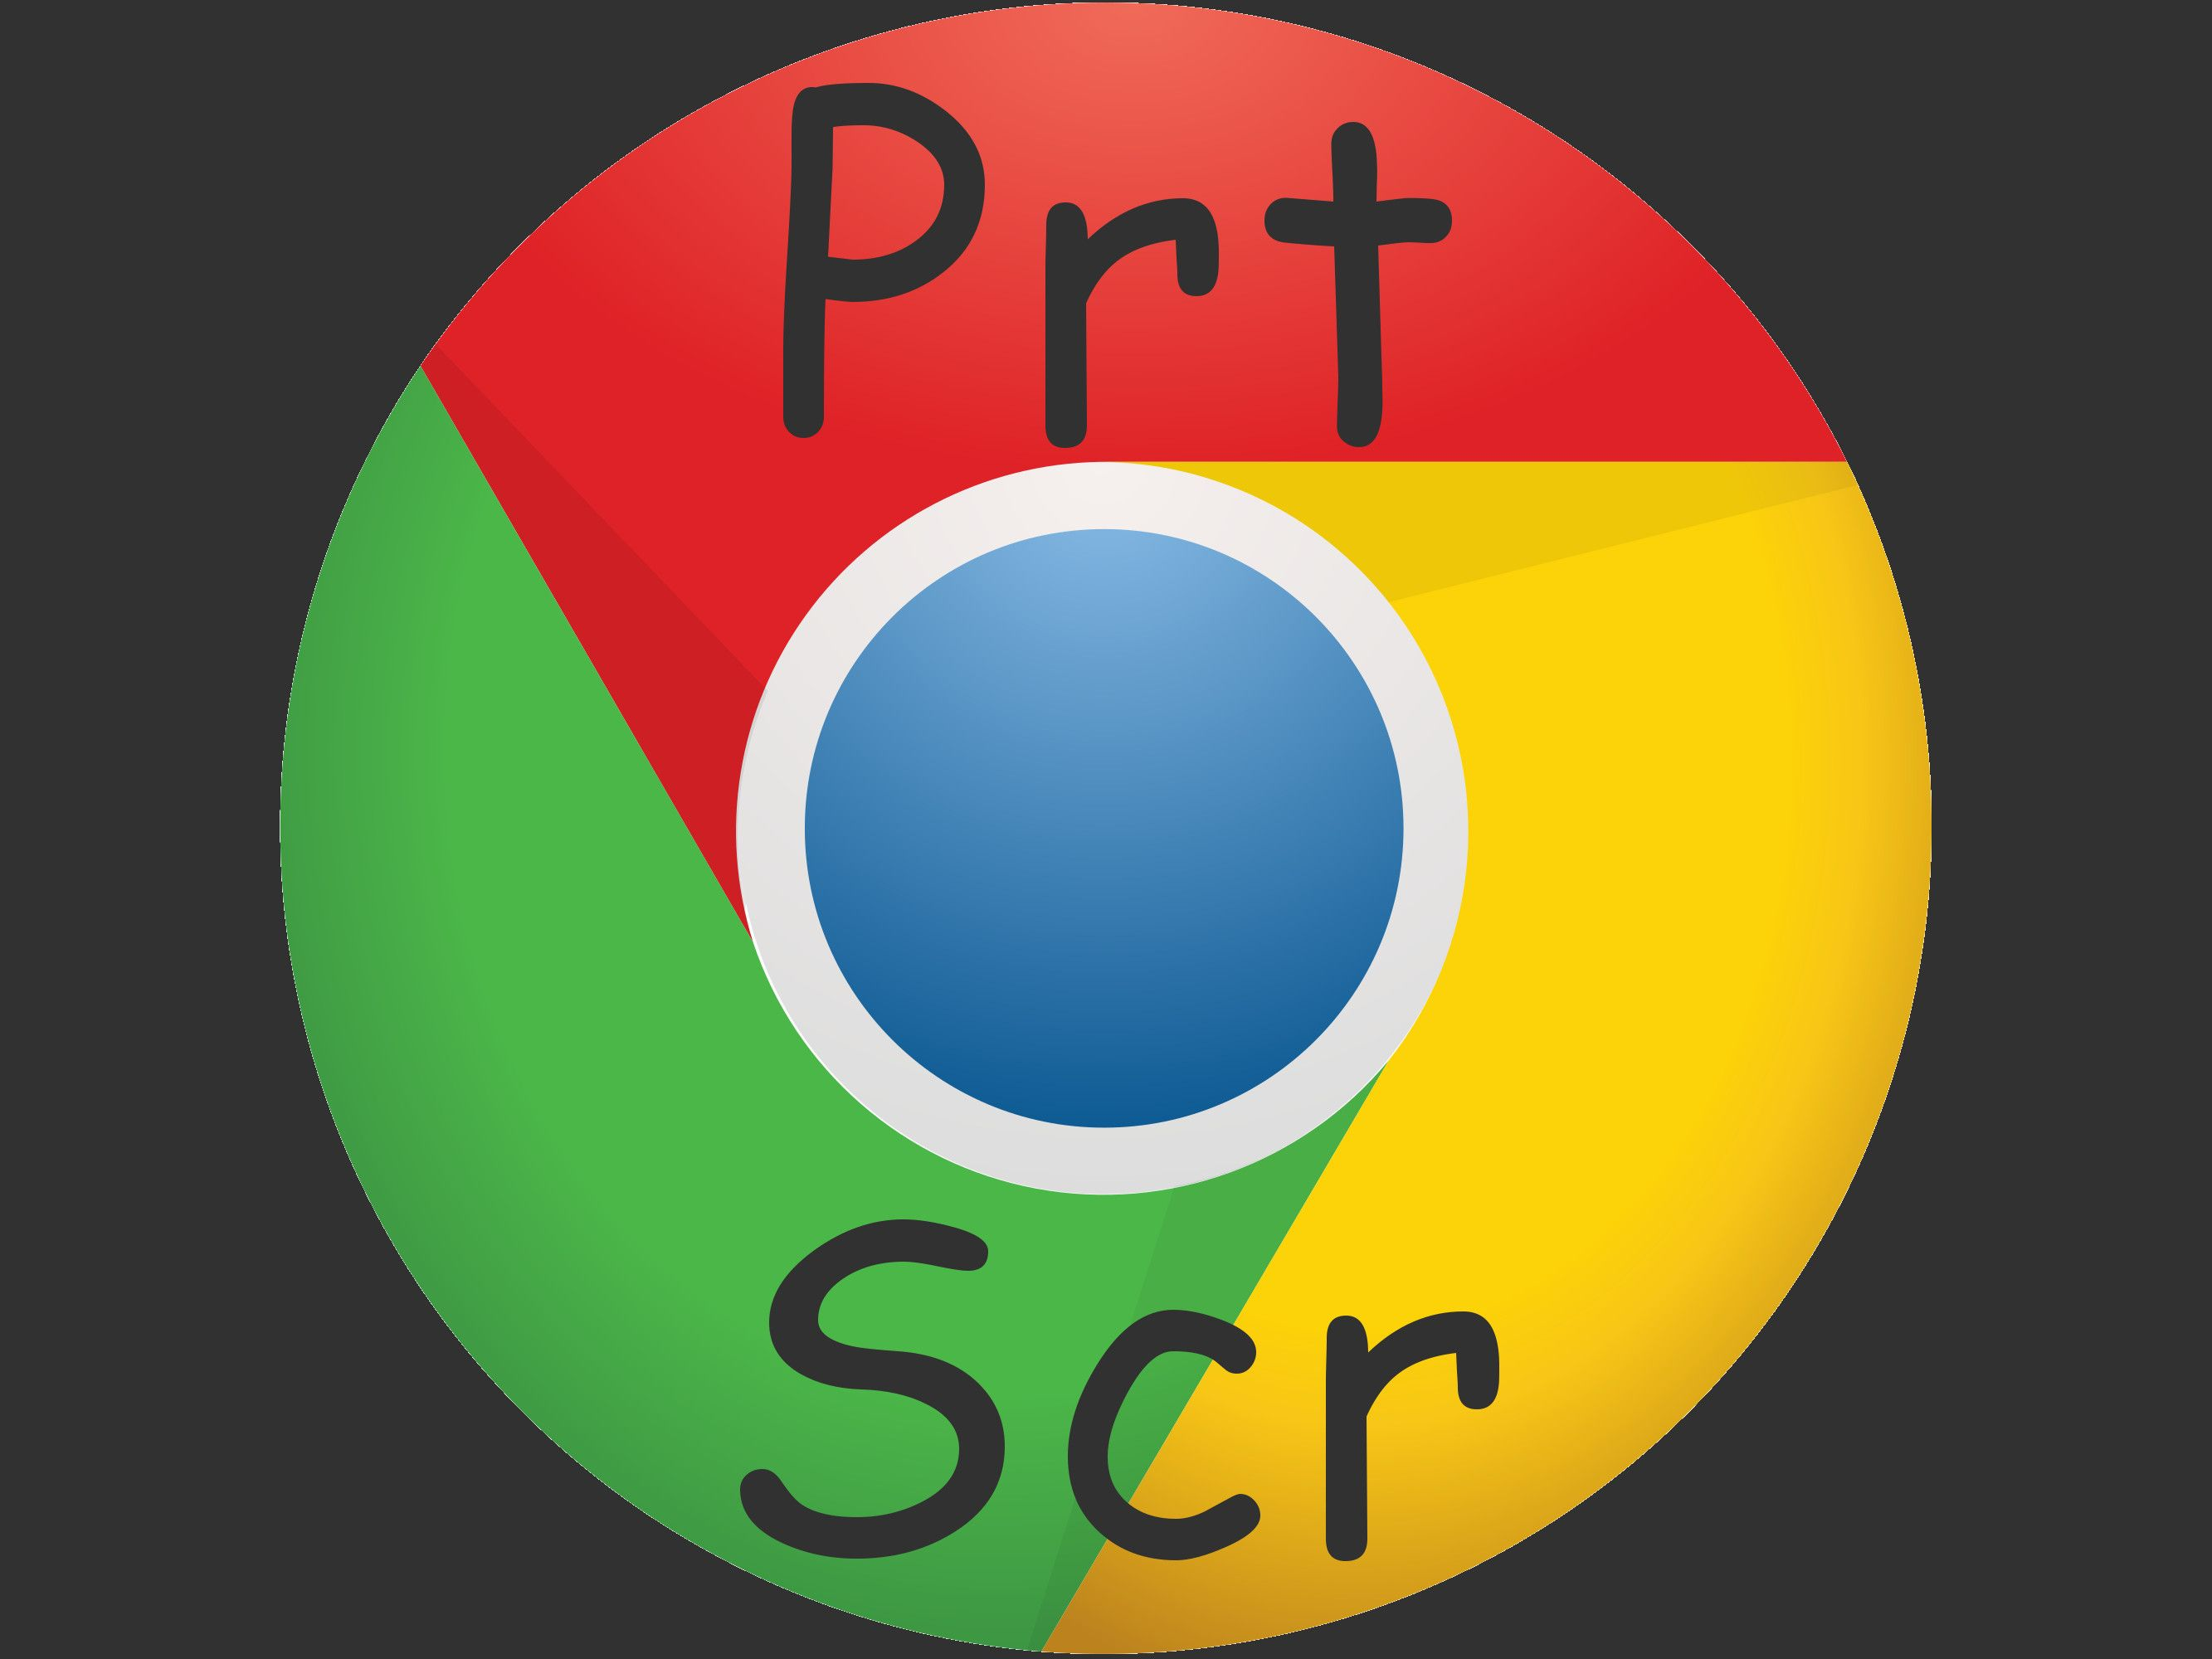 Print screen key Prt Scr on Google Chrome icon